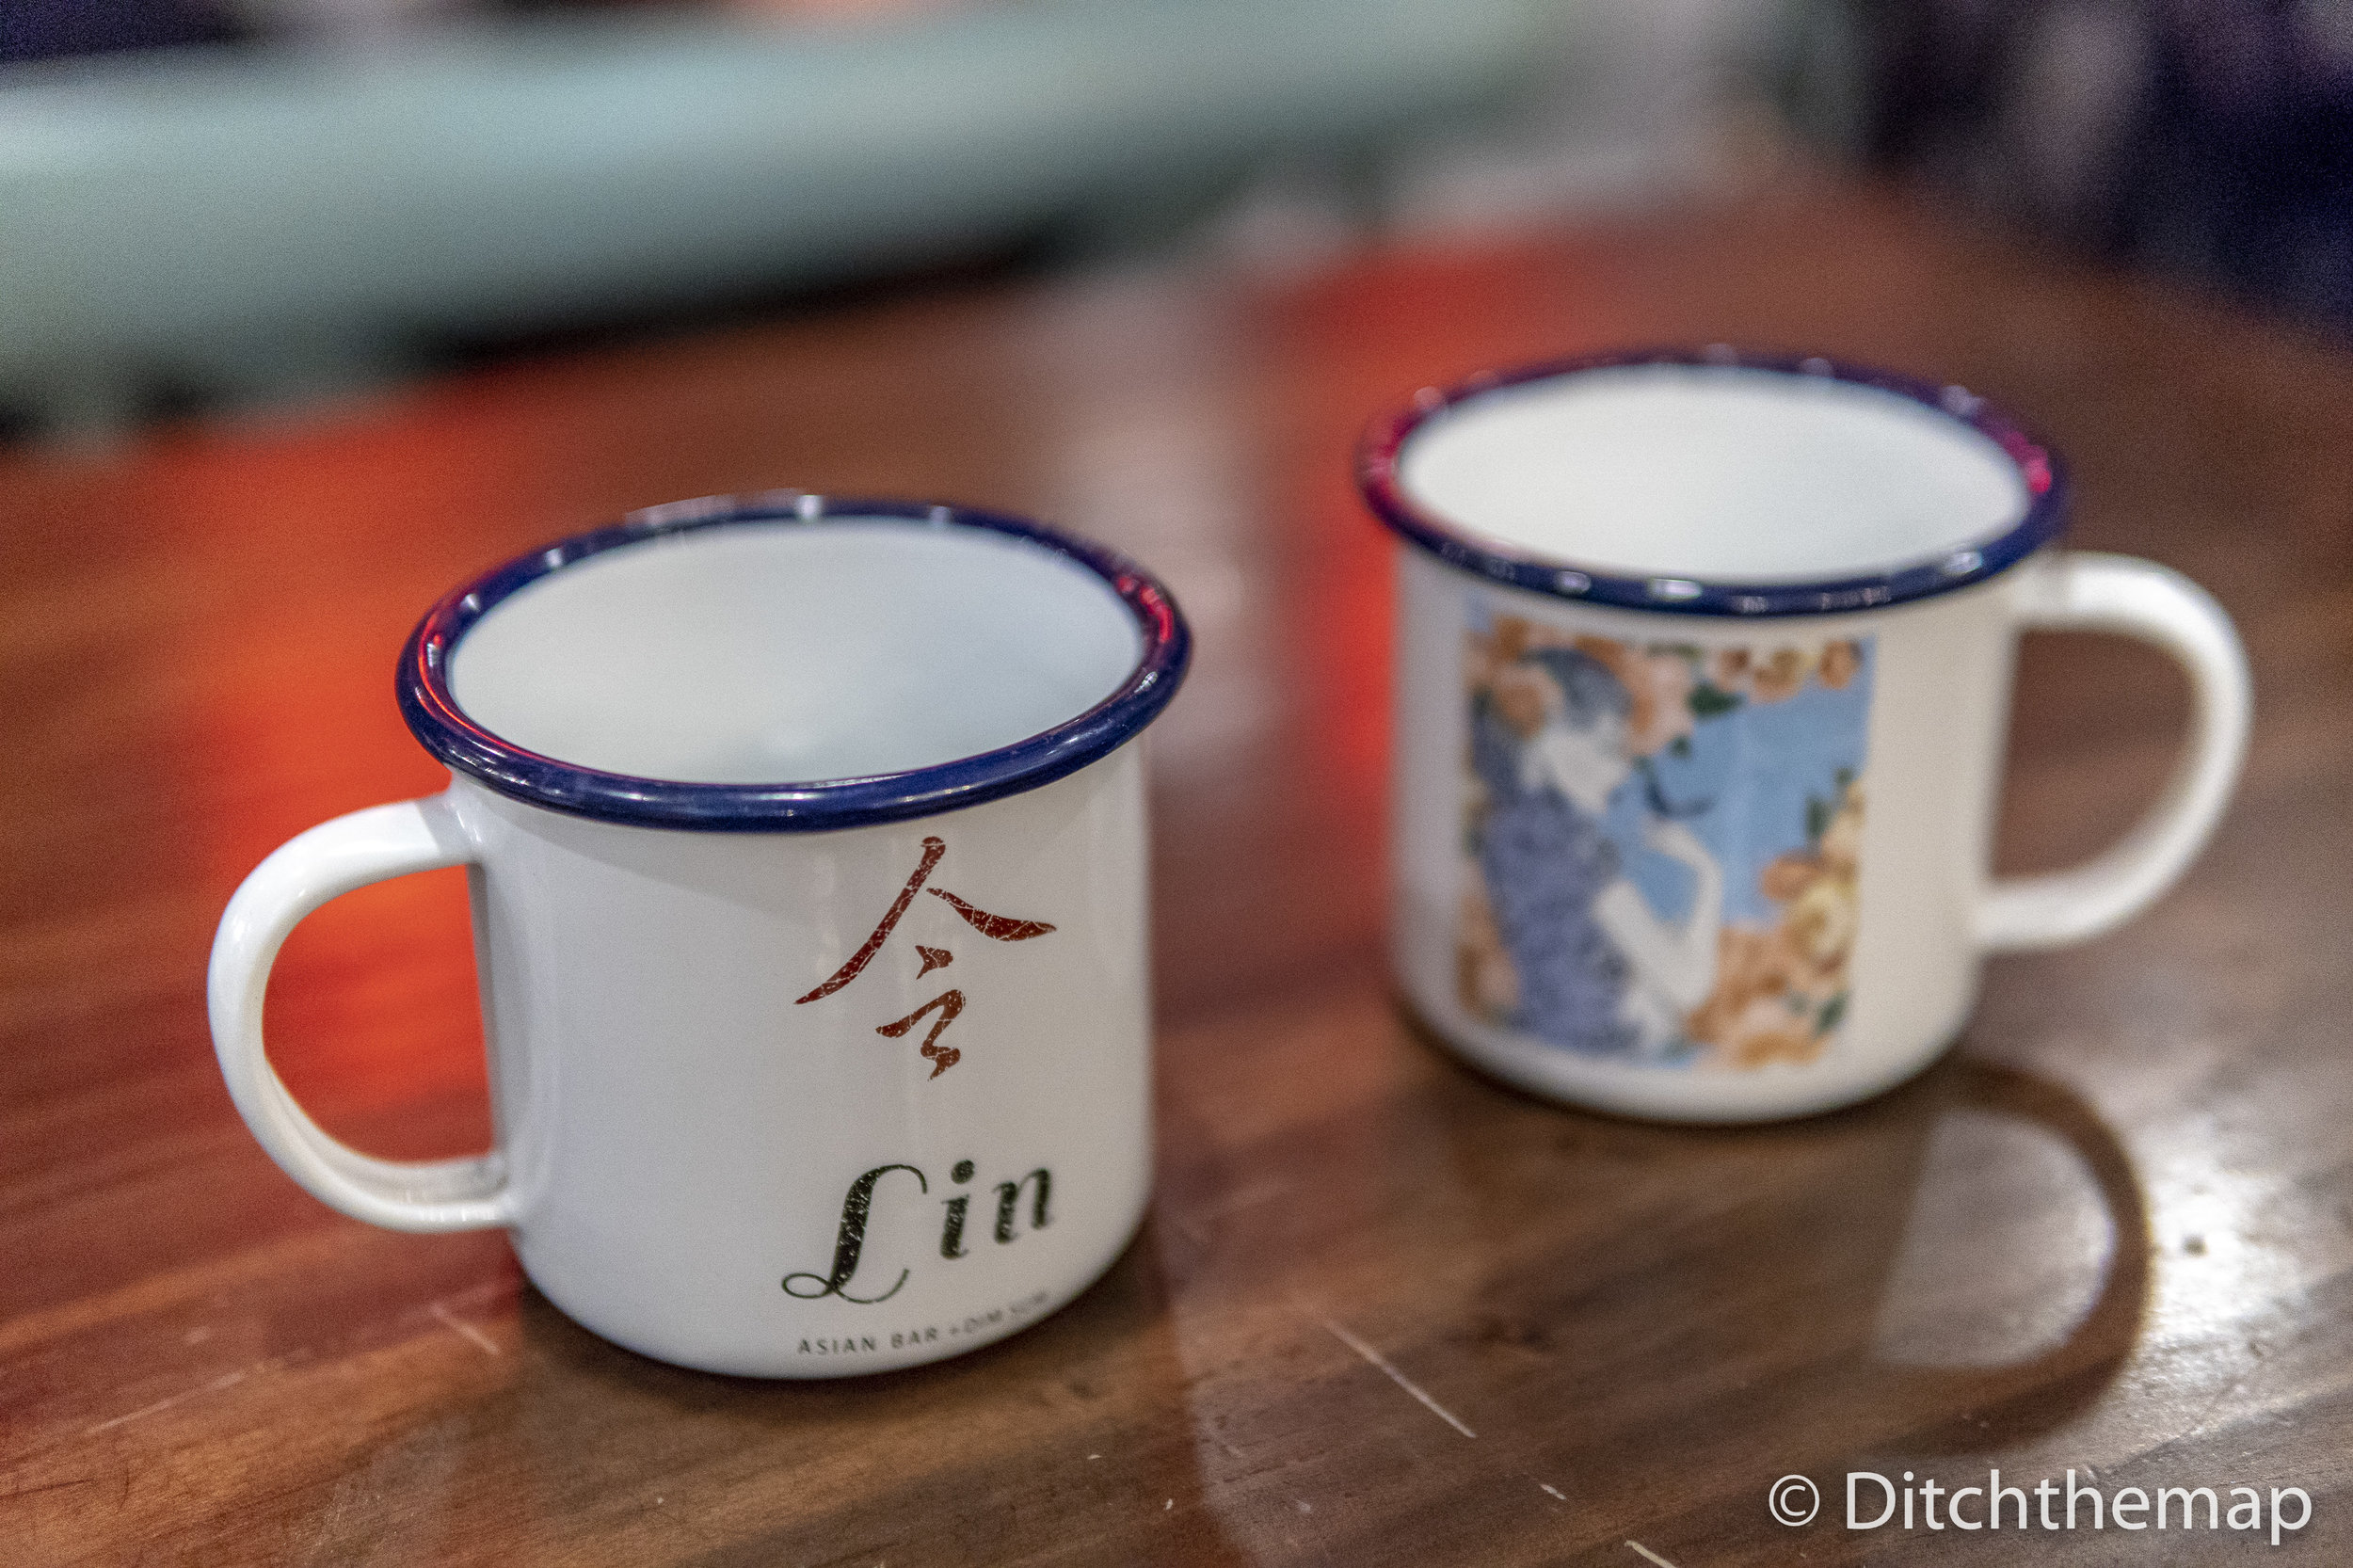 Authentic Drinking Glasses from China